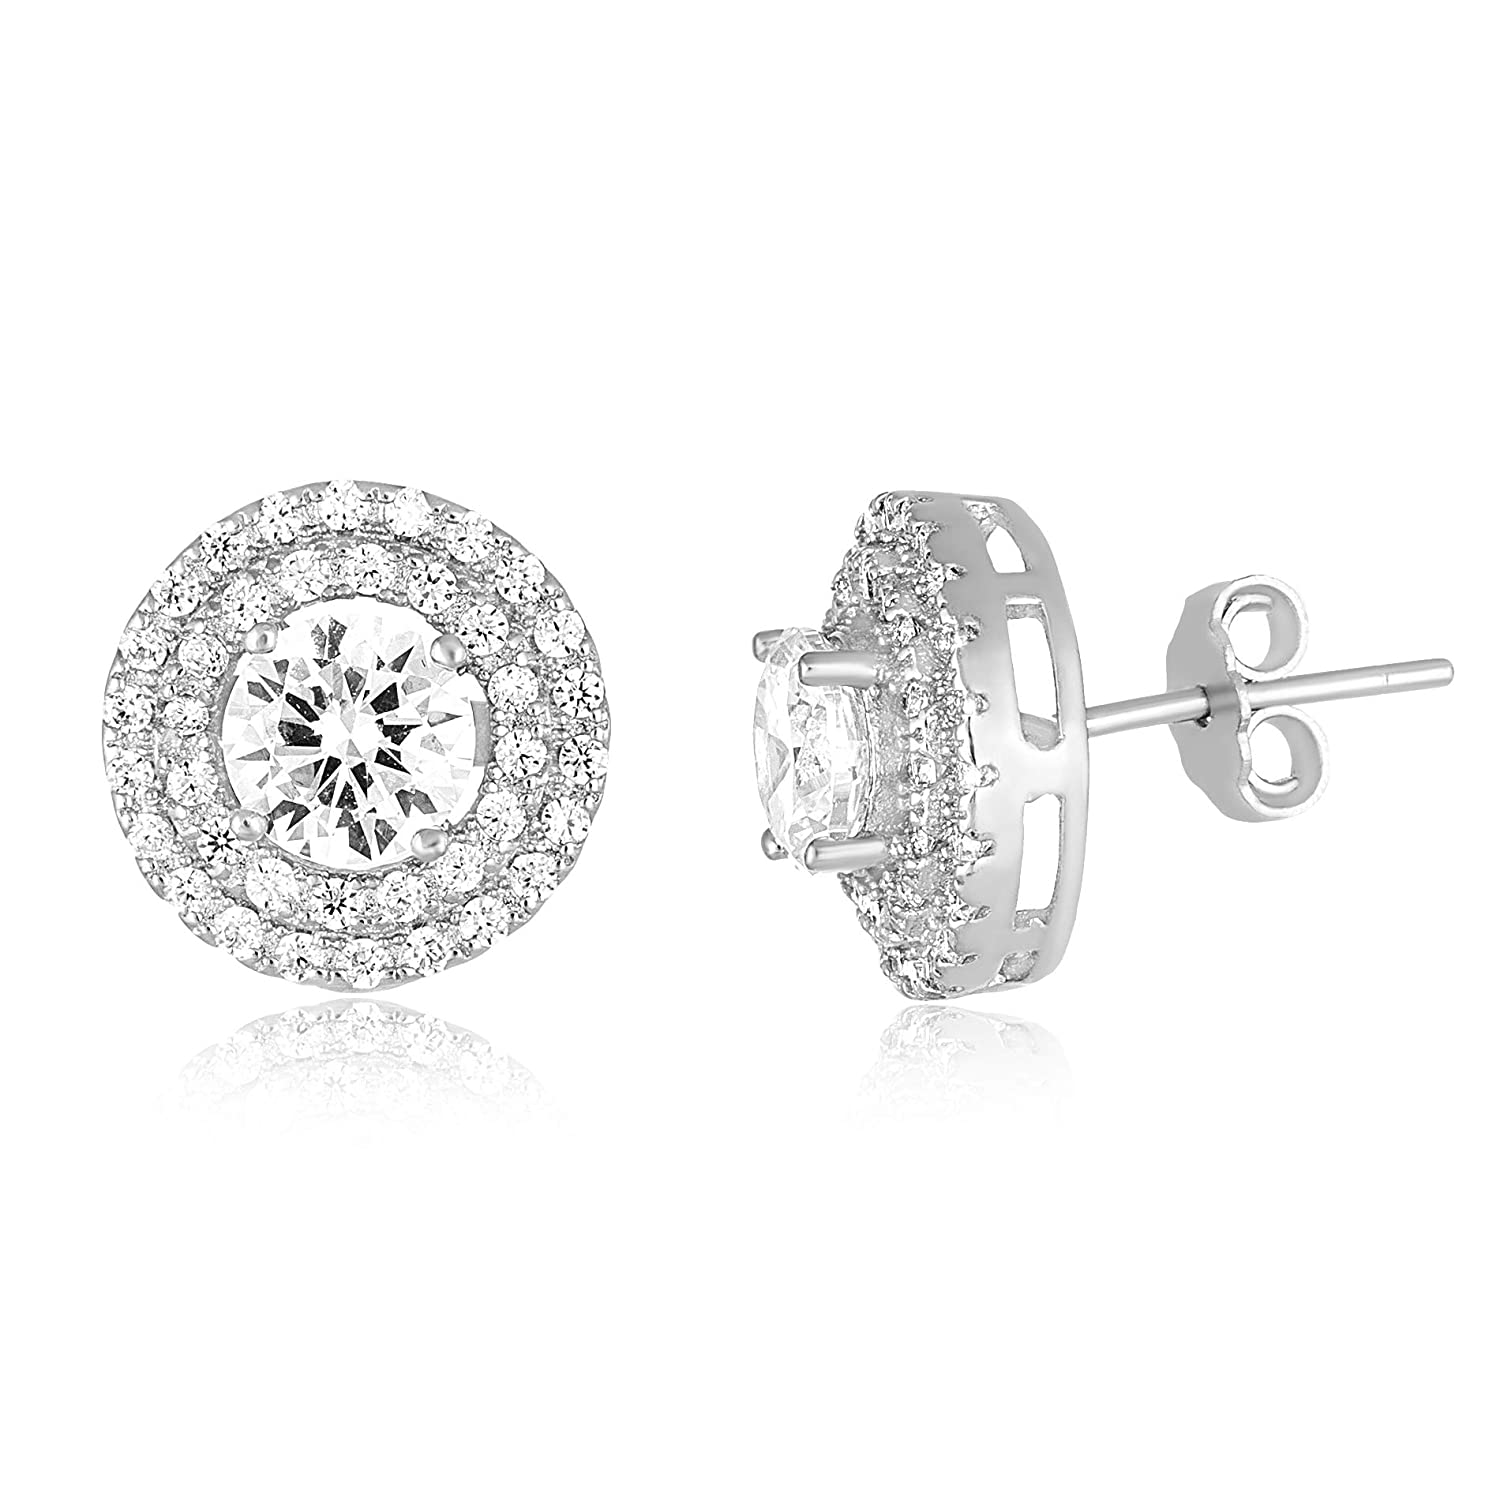 Mia Sarine Round Cubic Zirconia Double Halo Bridal Stud Earring for Women in Rhodium Plated Sterling Silver